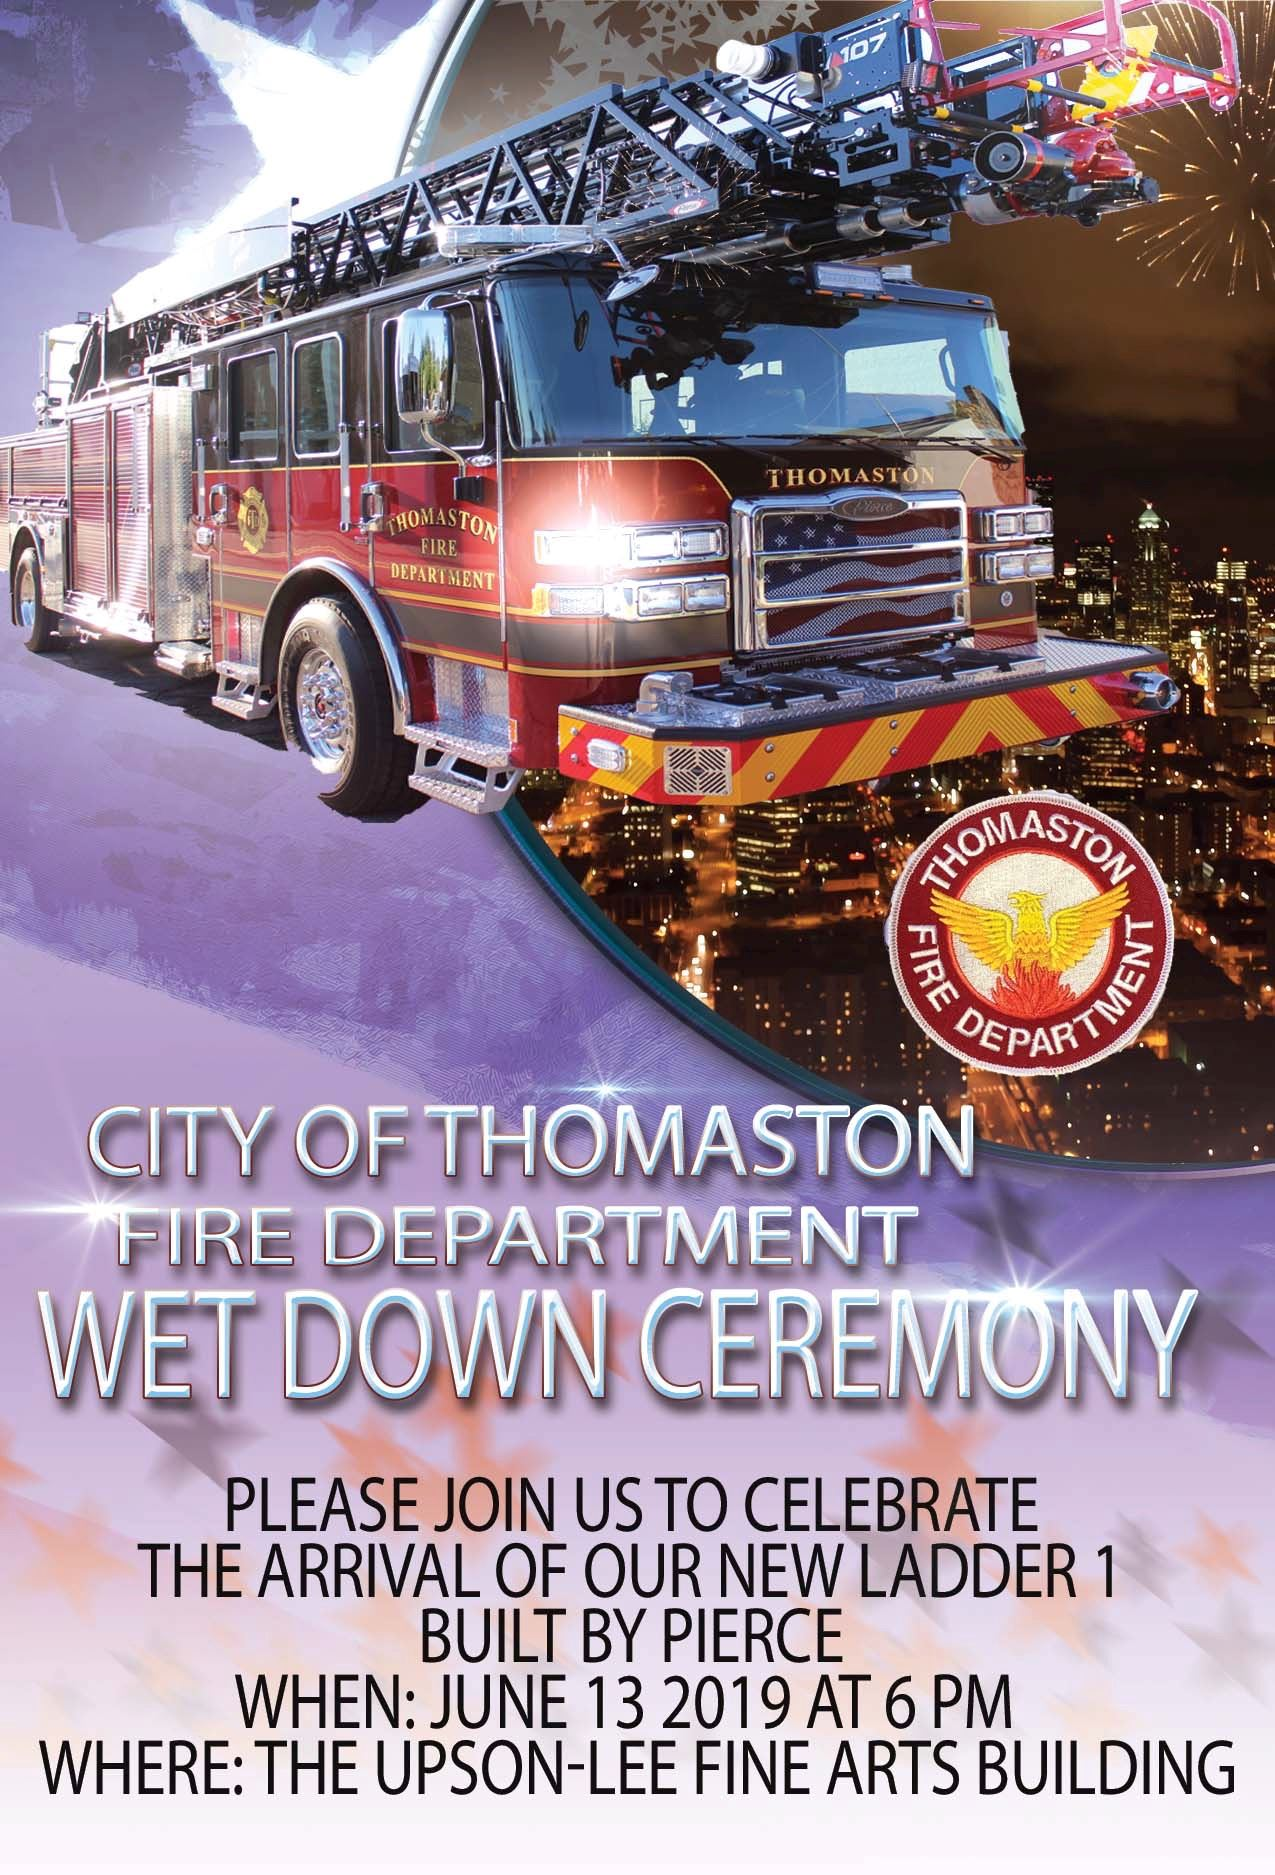 Invitation for Thomaston Fire Department Wet Down Ceremony Flyer 2019